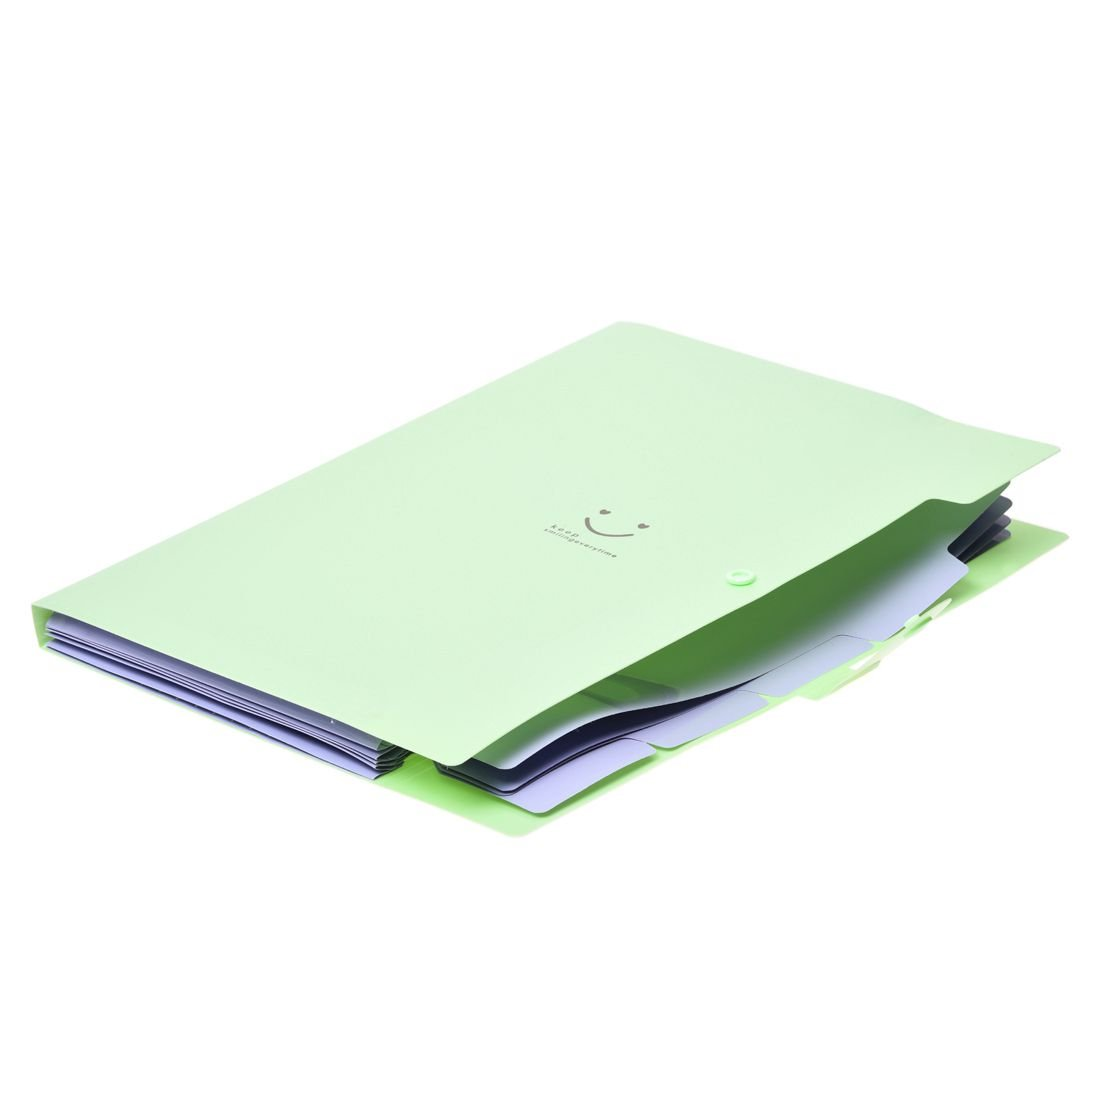 Amazon.com : SODIAL(R) Kawaii FoldersStationery Carpeta File Folder 5layers Archivadores Rings A4 Document Bag Office Carpetas£¨Light Green£ : Office ...